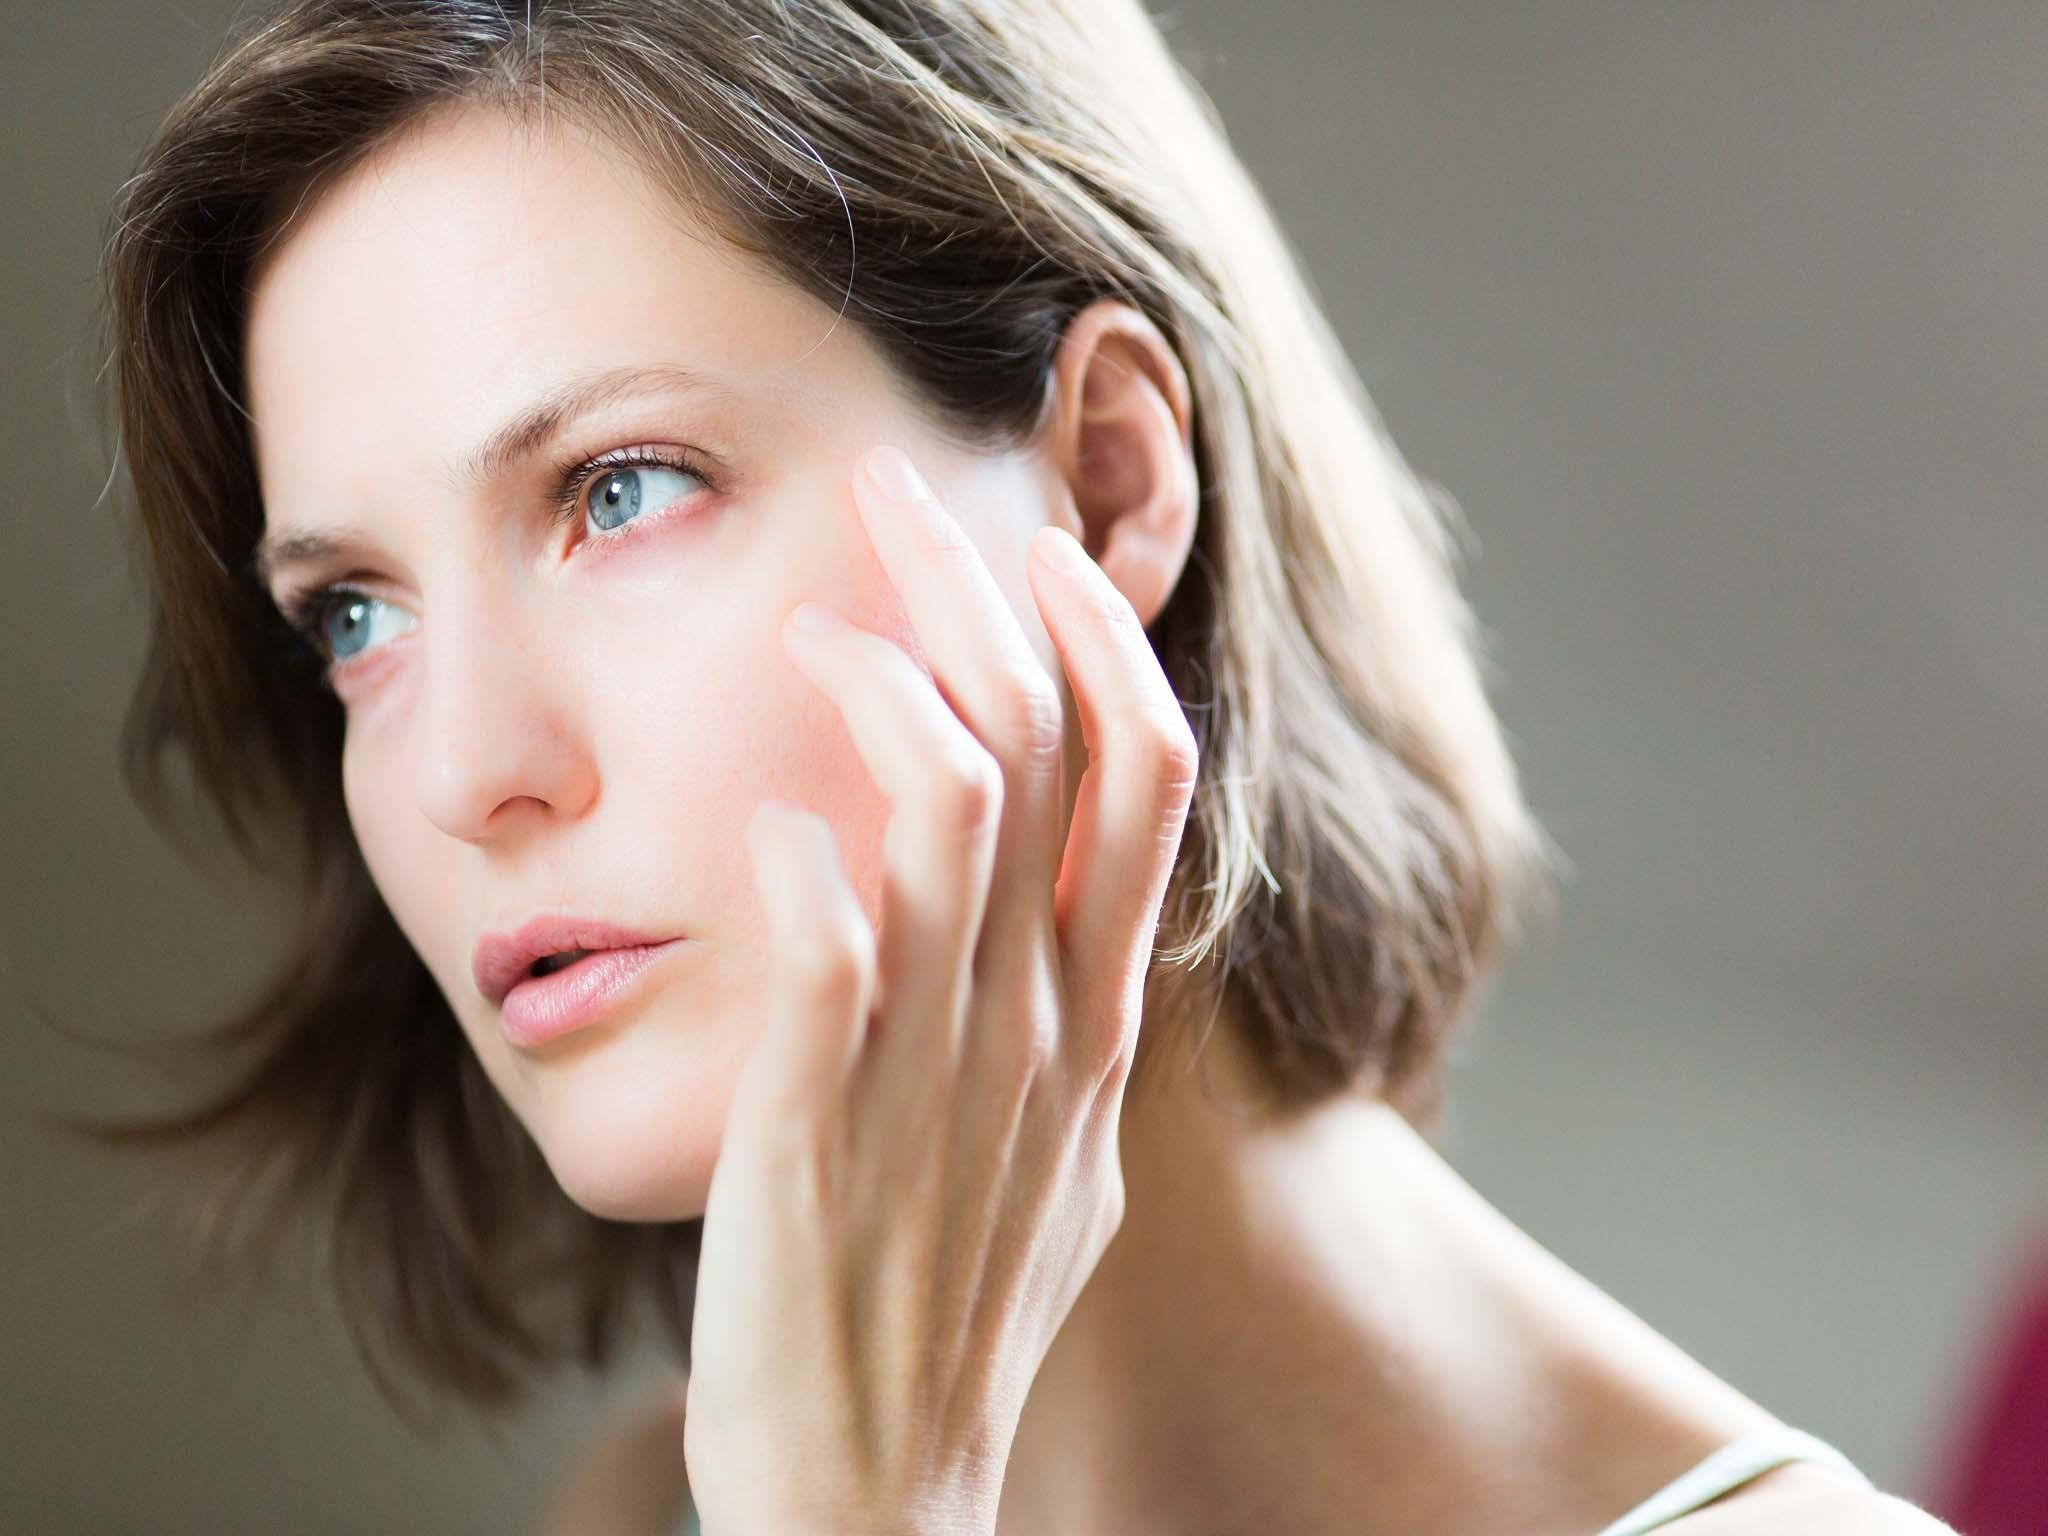 6 Steps To Banish BlotchySkin